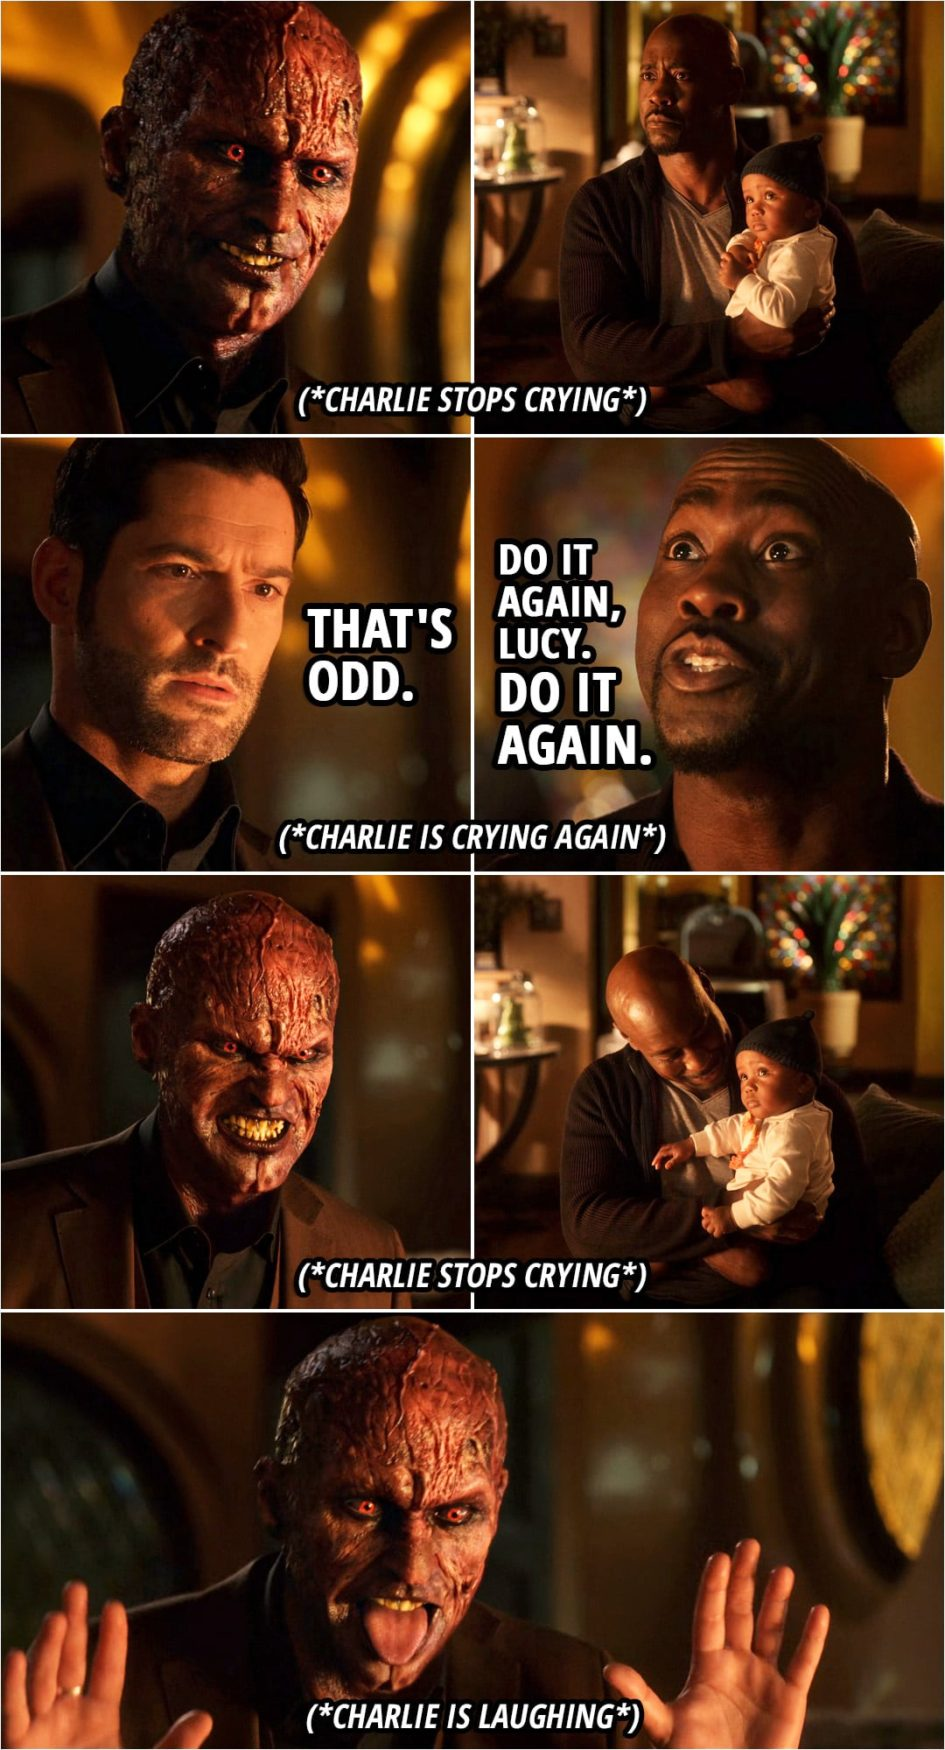 Quote from Lucifer 5x06 | (Lucifer gets angry and shows his devil face, which makes Charlie stop crying, looking at him curiously...) Lucifer Morningstar: That's odd. (Lucifer turns his face back and Charlie starts crying again...) Amenadiel: Do it again, Lucy. Do it again. Yeah, yeah. Do it again. (Lucifer shows his devil face again and makes Charlie laugh...)